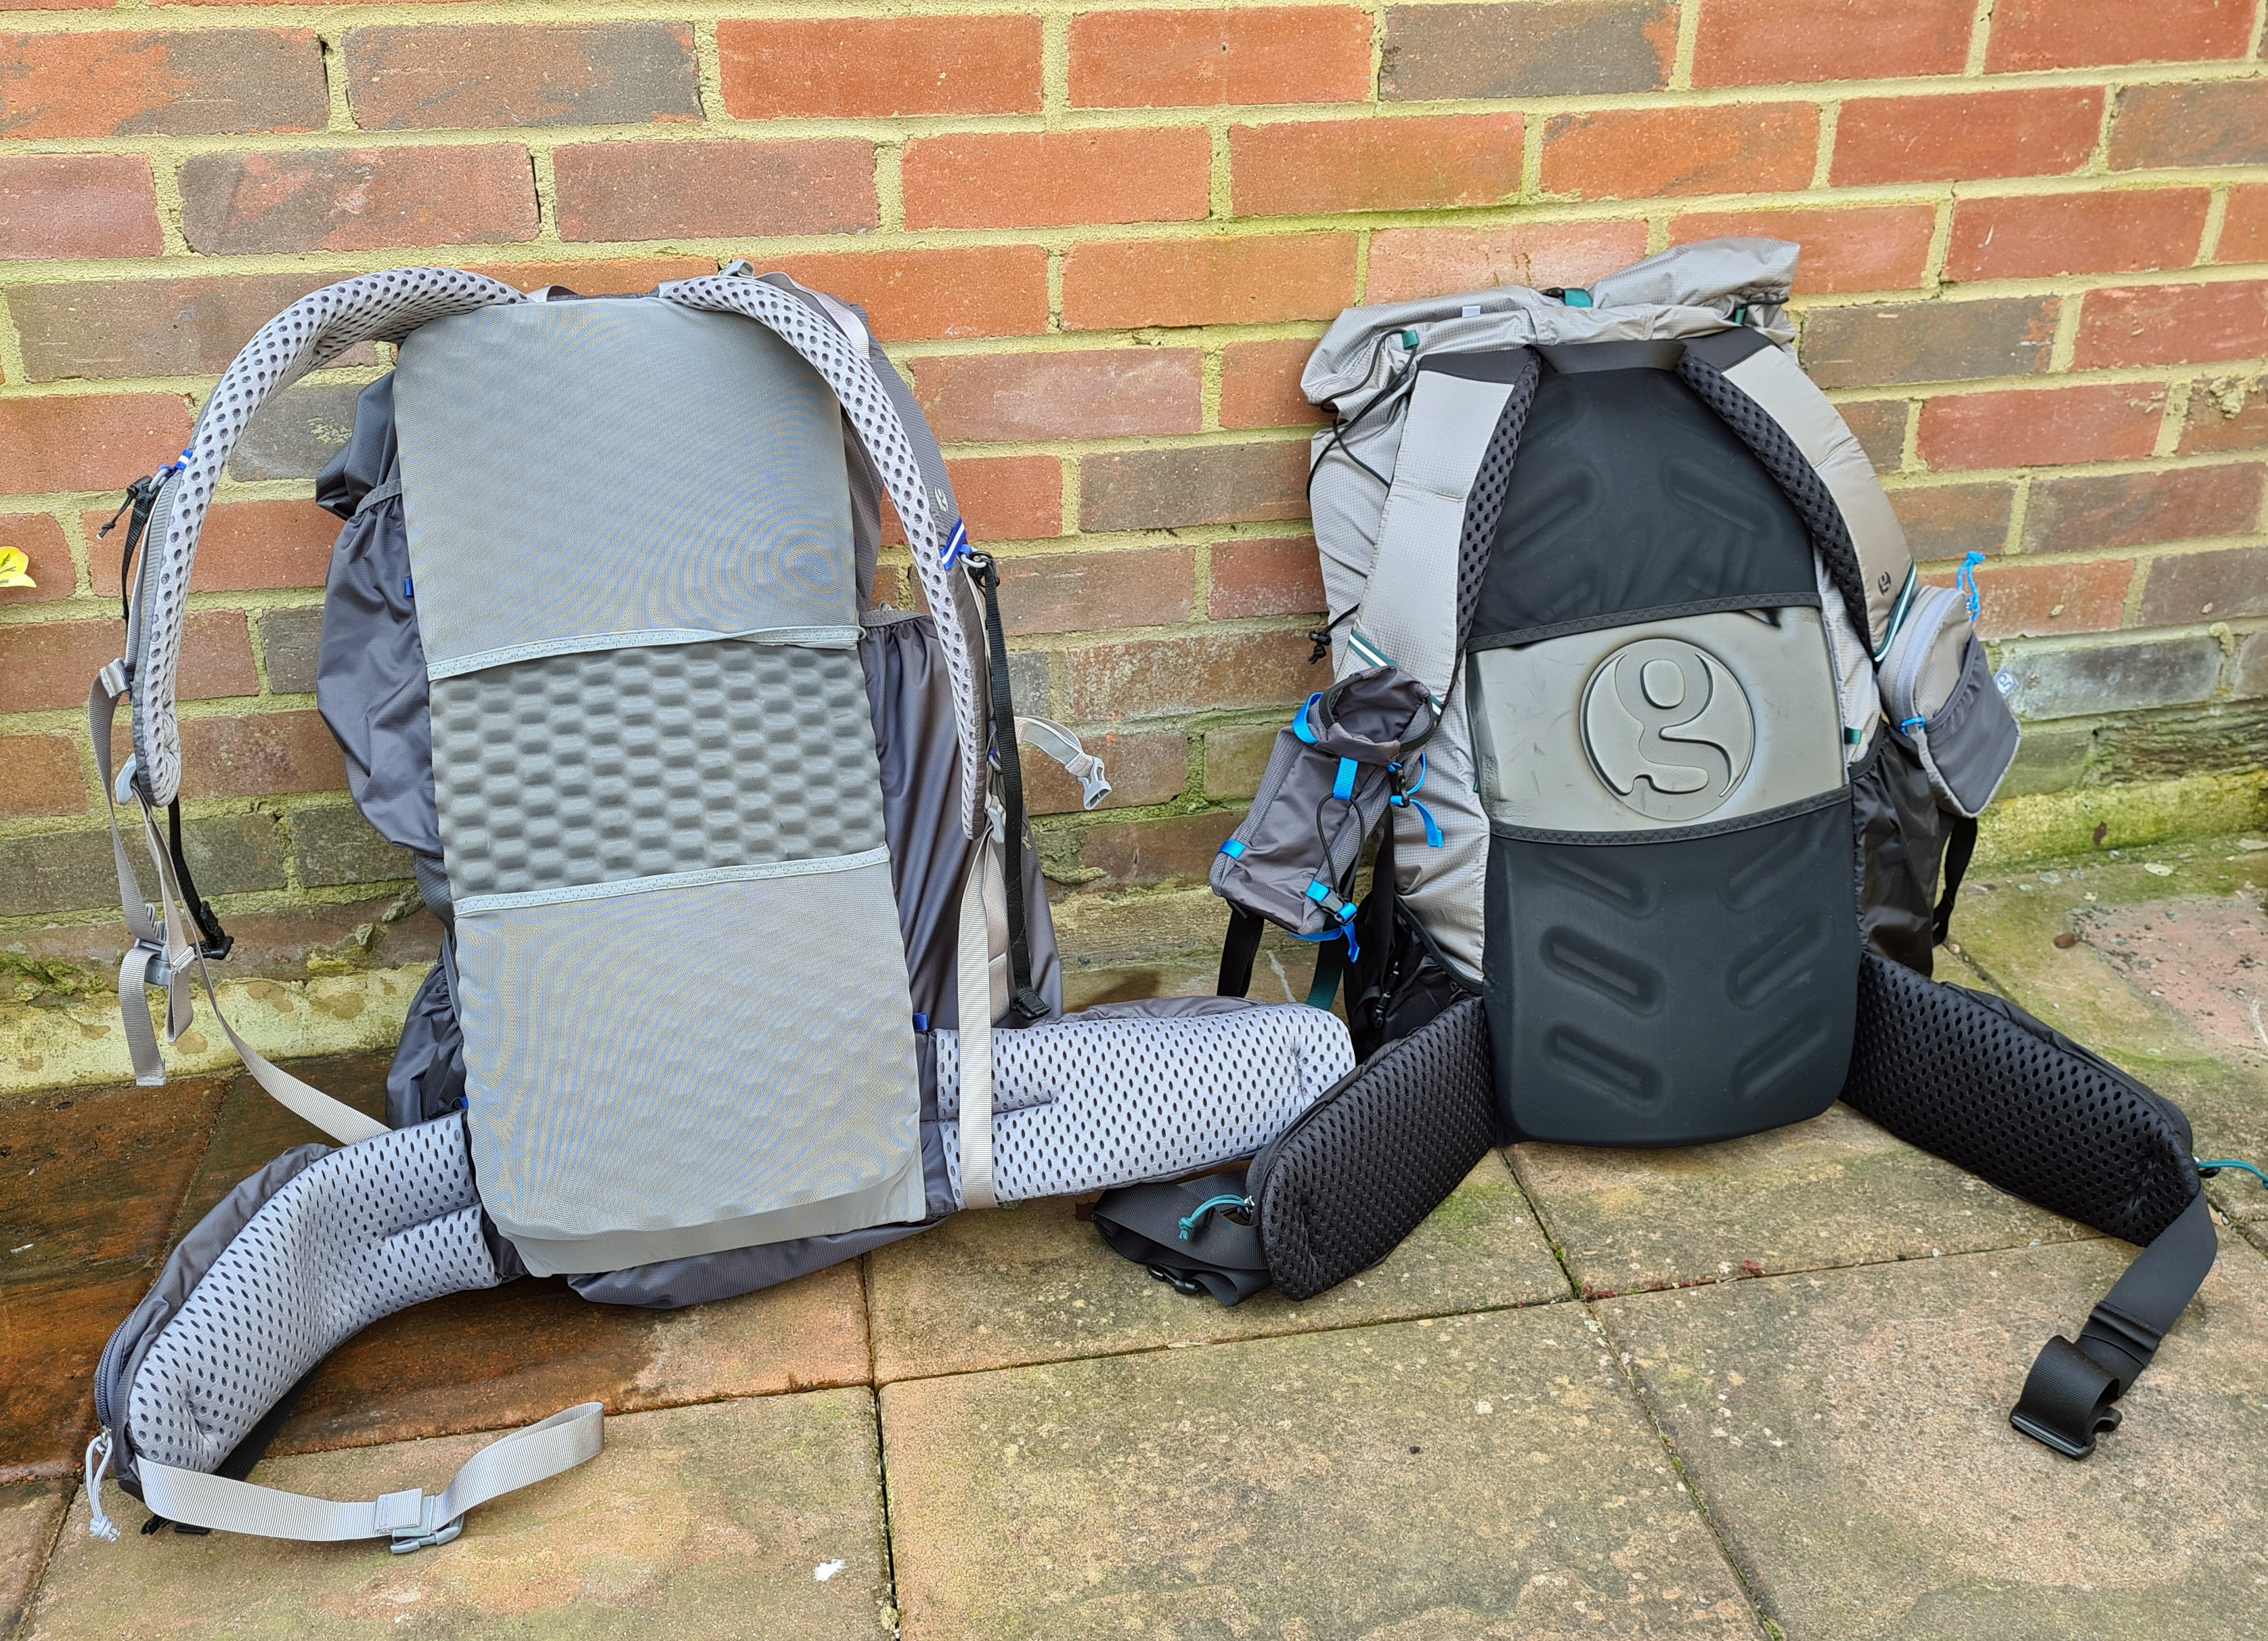 Nov 2019 Mariposa with 'eggcrate' pad and 2020 G4-20 with Rigid back pad as supplied